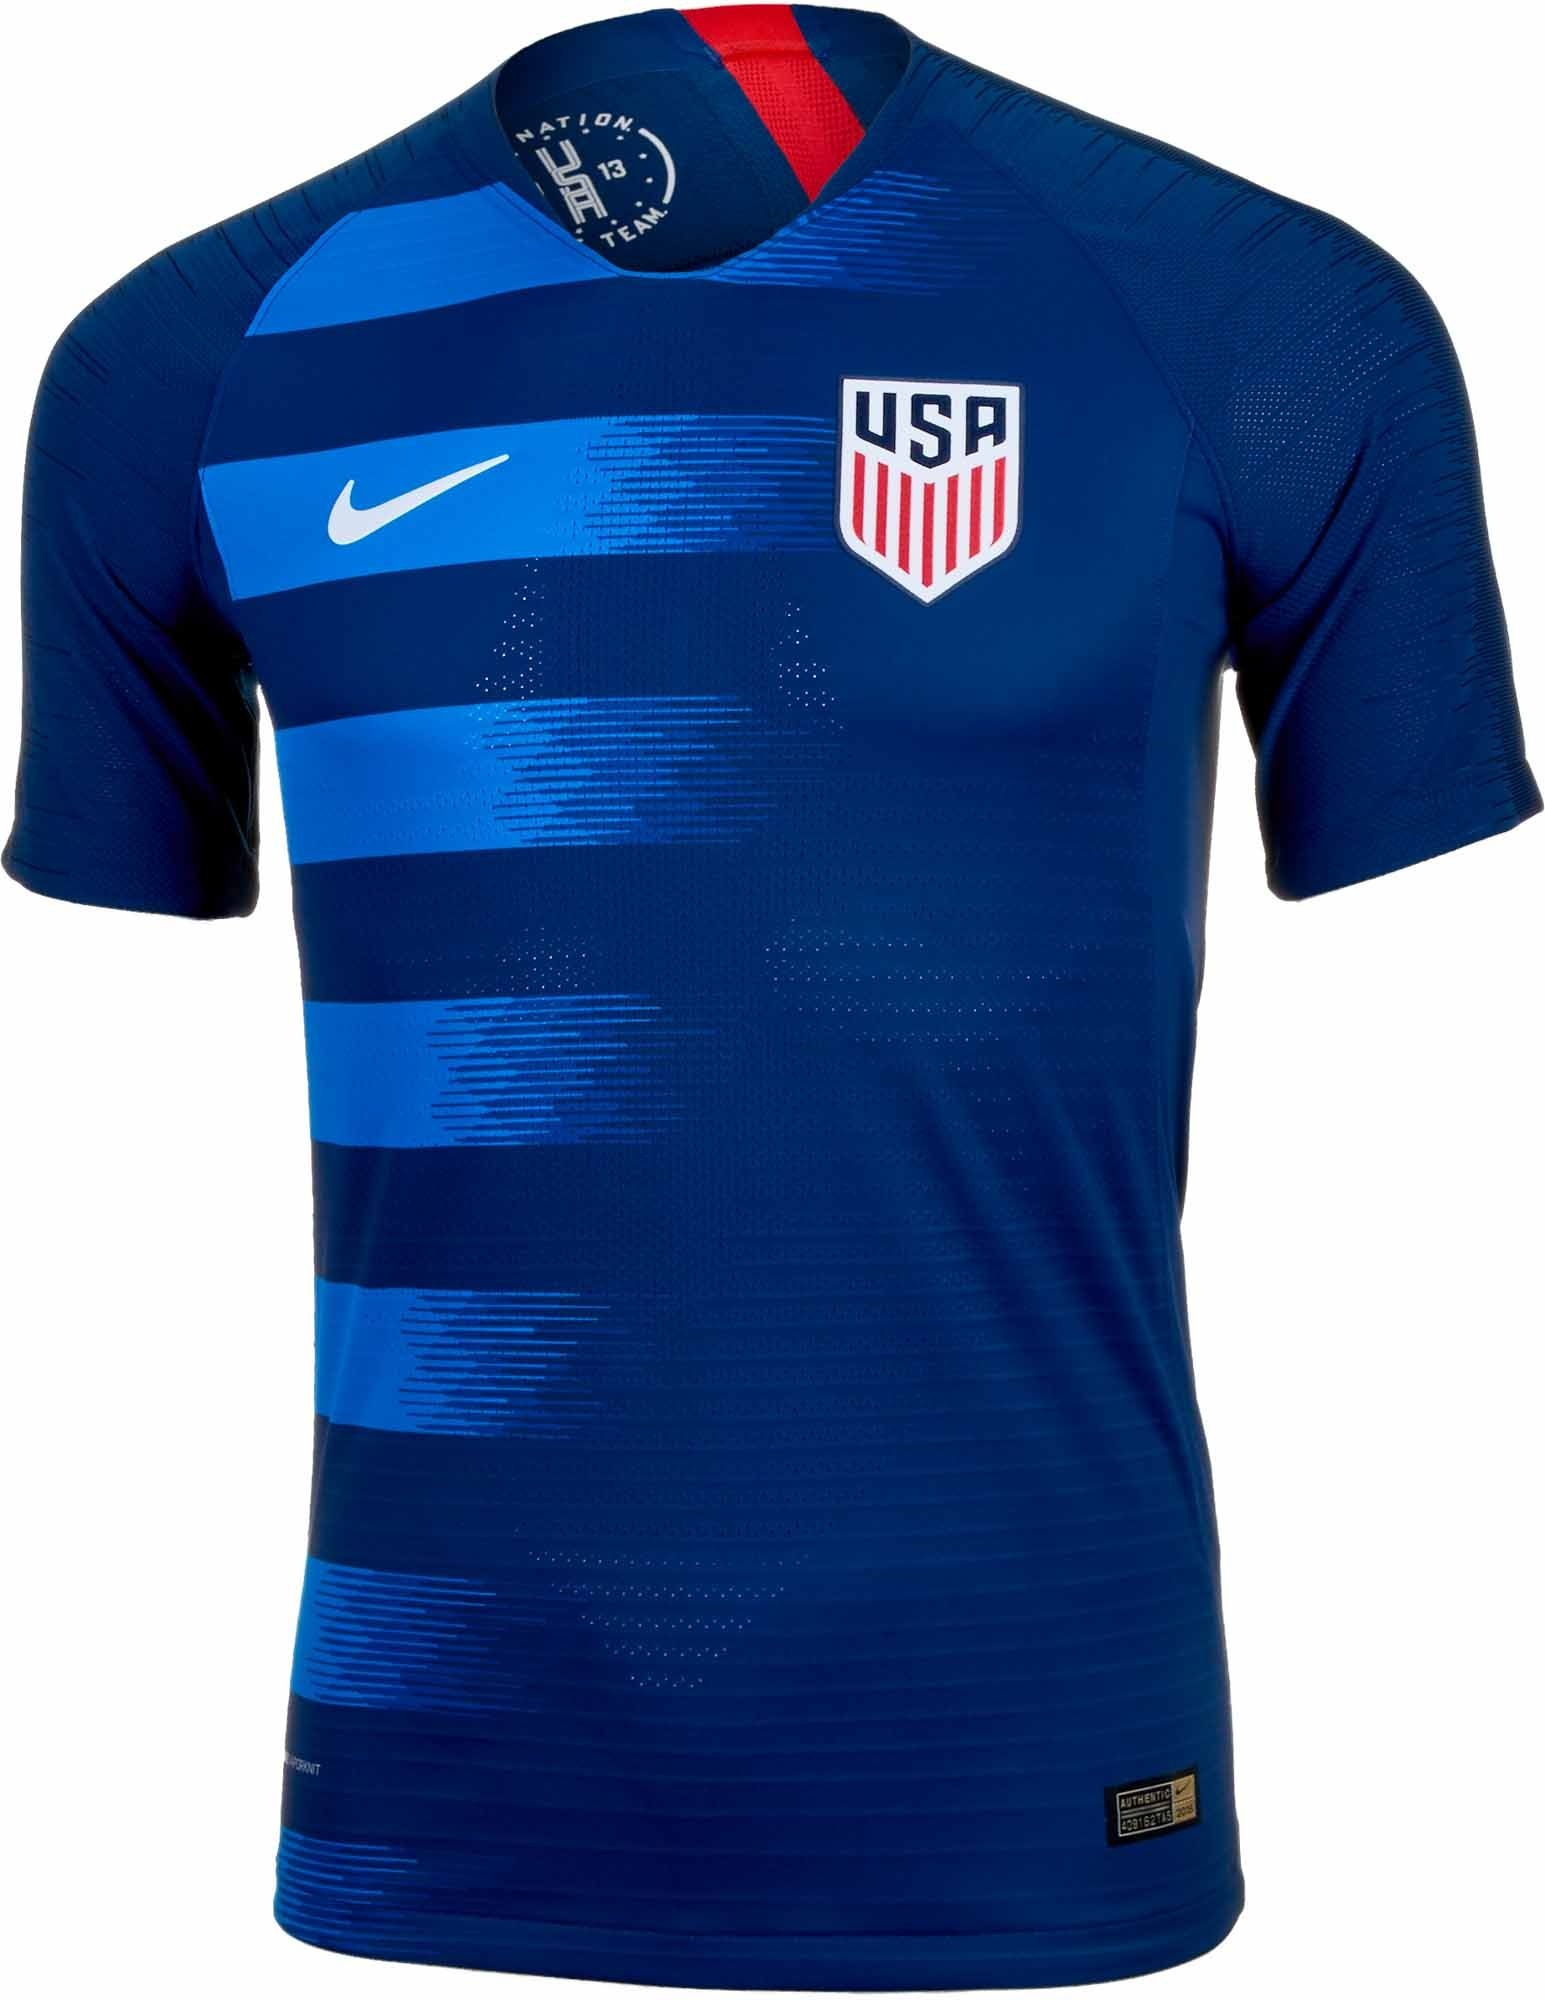 6914b4224 Buy the Nike USA Away Match Jersey for 2018-19 and support the squad this  summer in the World C...Erhm... in all of the matches the US Soccer team  plays!